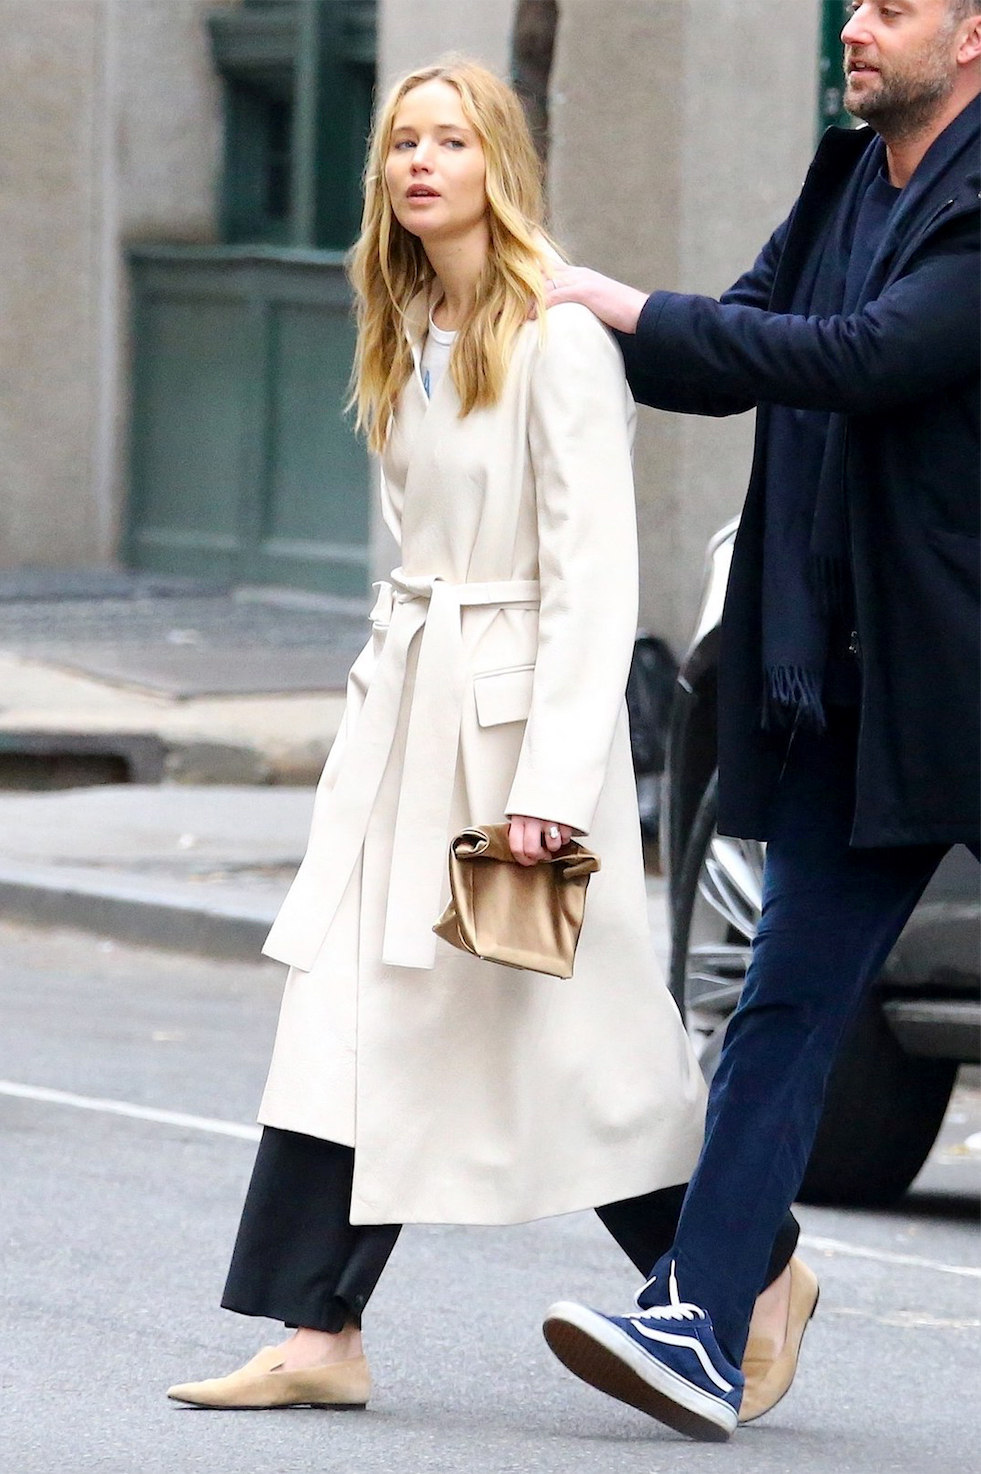 Jennifer Lawrence Minimalist Outfit — White Belted Coat, Satin Alexander Wang Lunch Bag Clutch, Black Wide-Leg Pants, and The Row Tan Suede Loafers